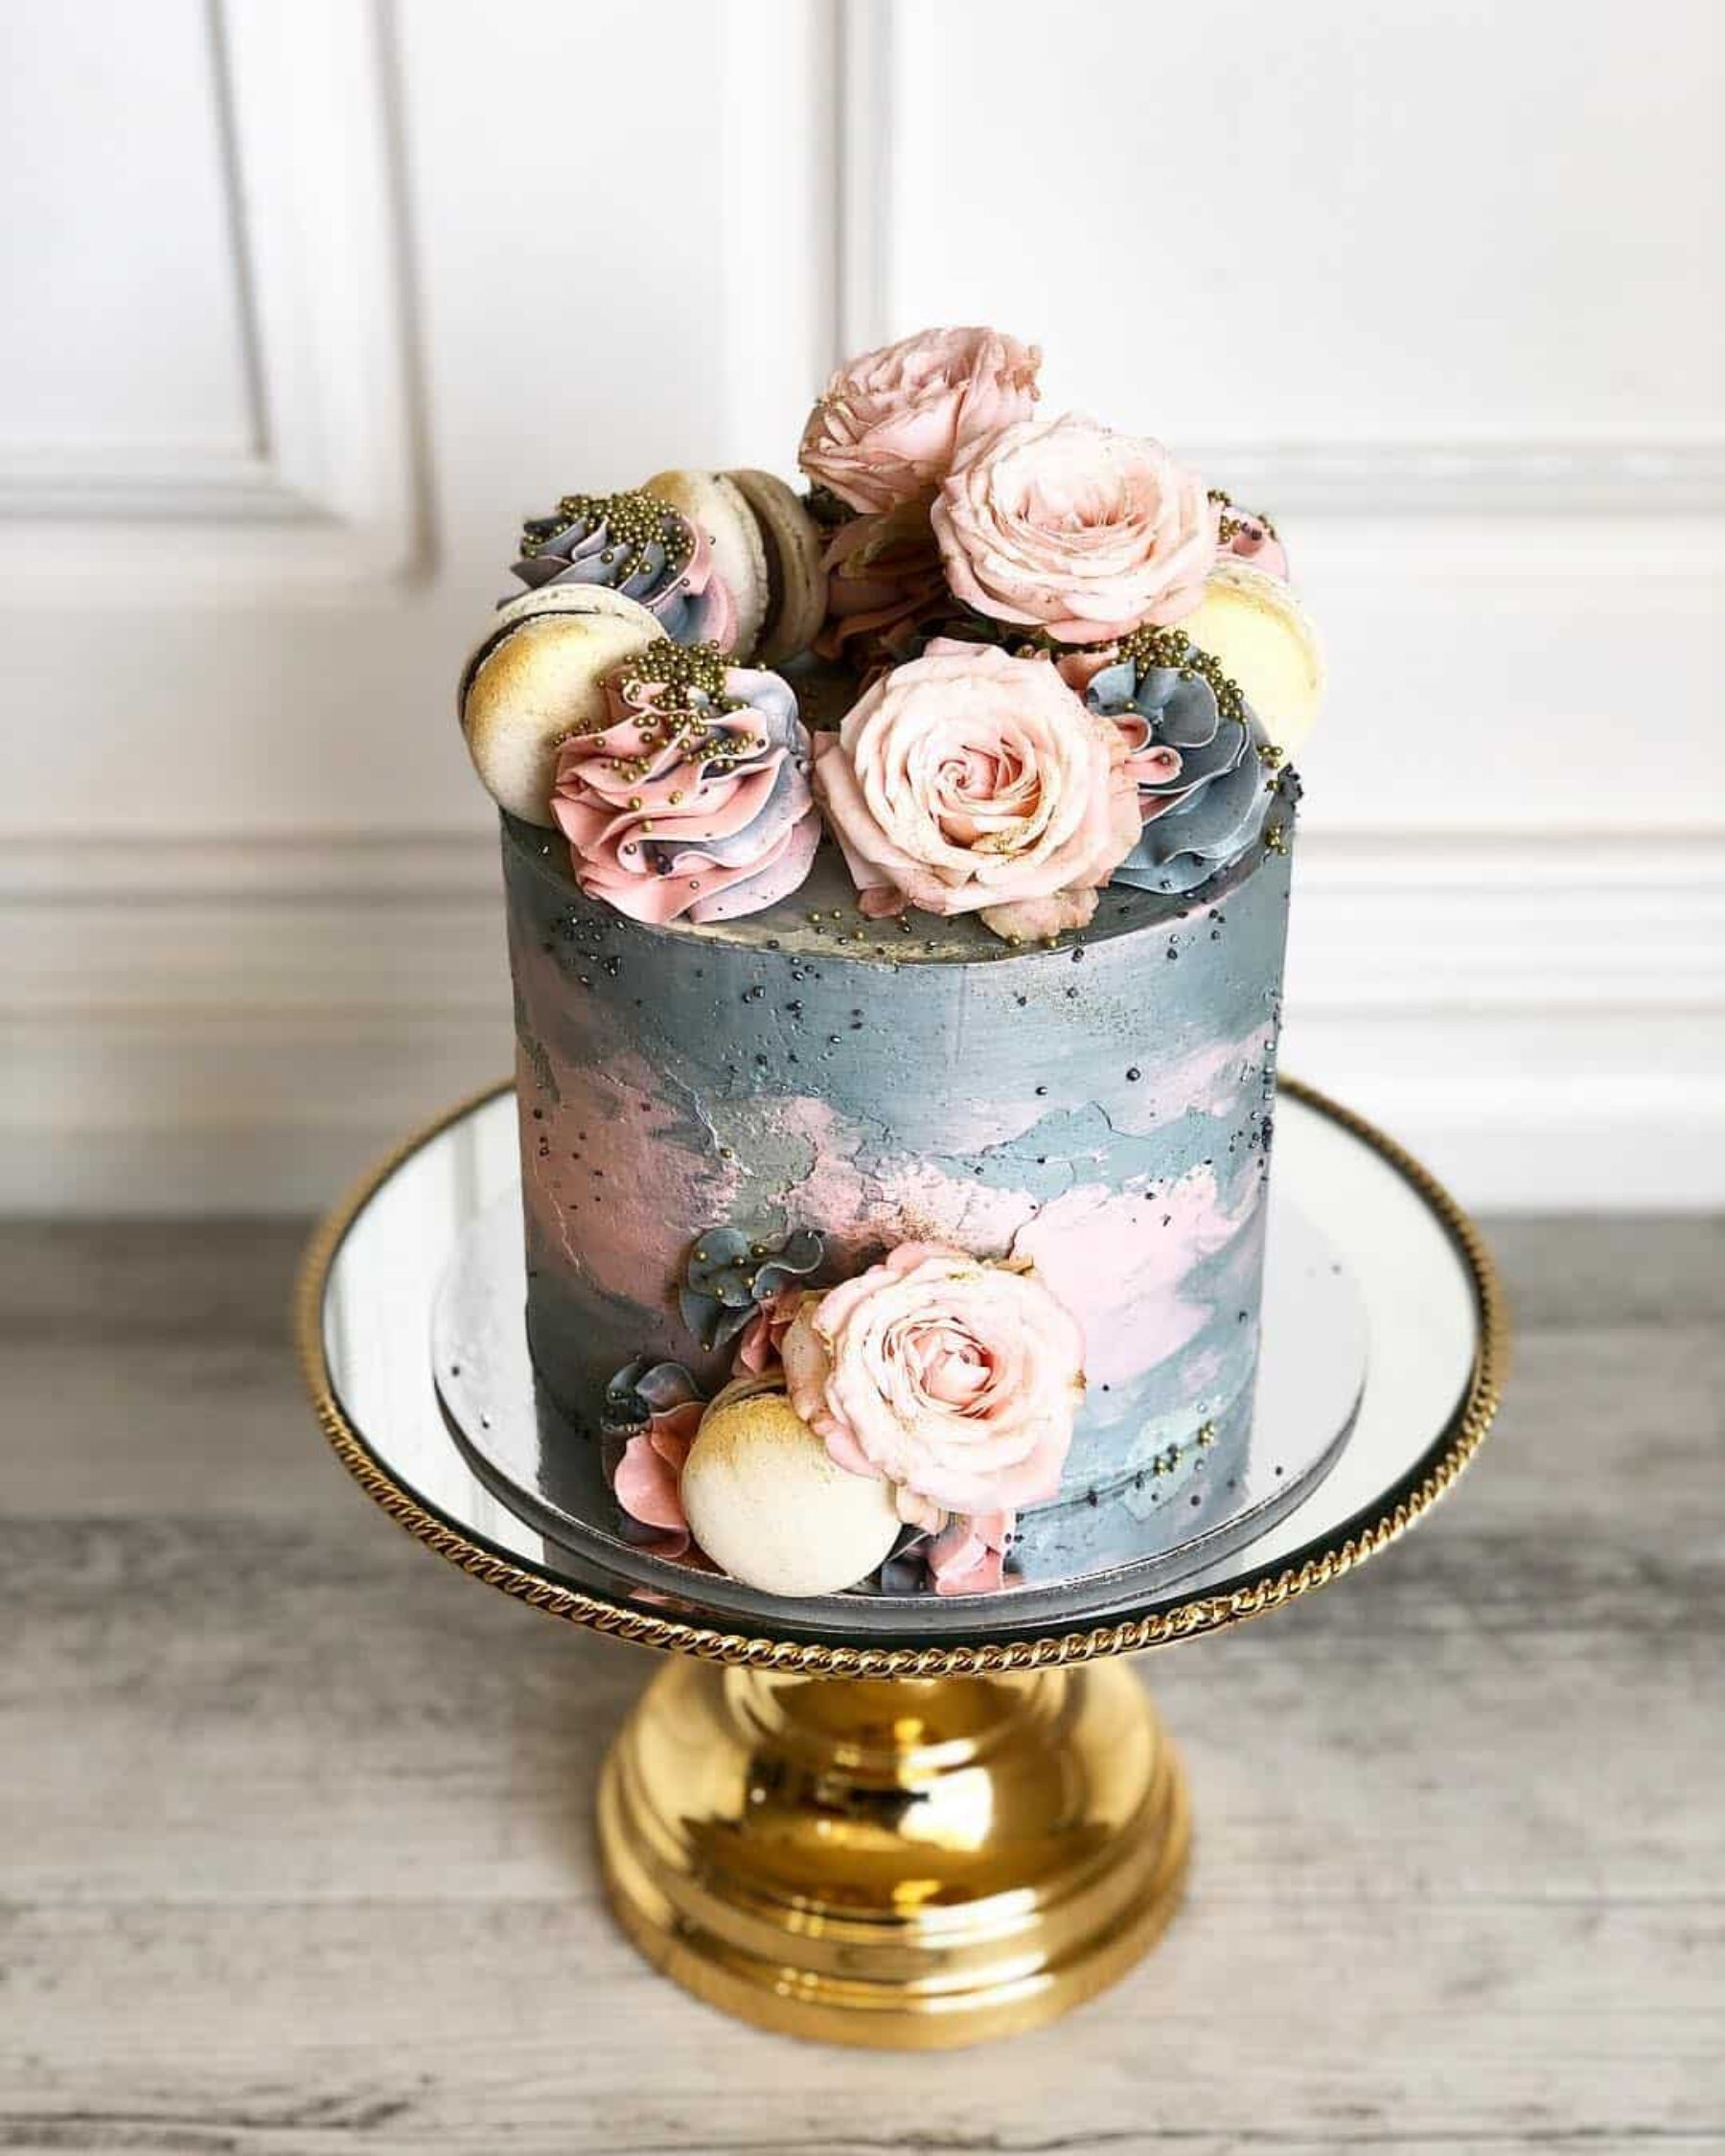 modern and creative wedding cakes in Perth WA - Posh Little Cakes